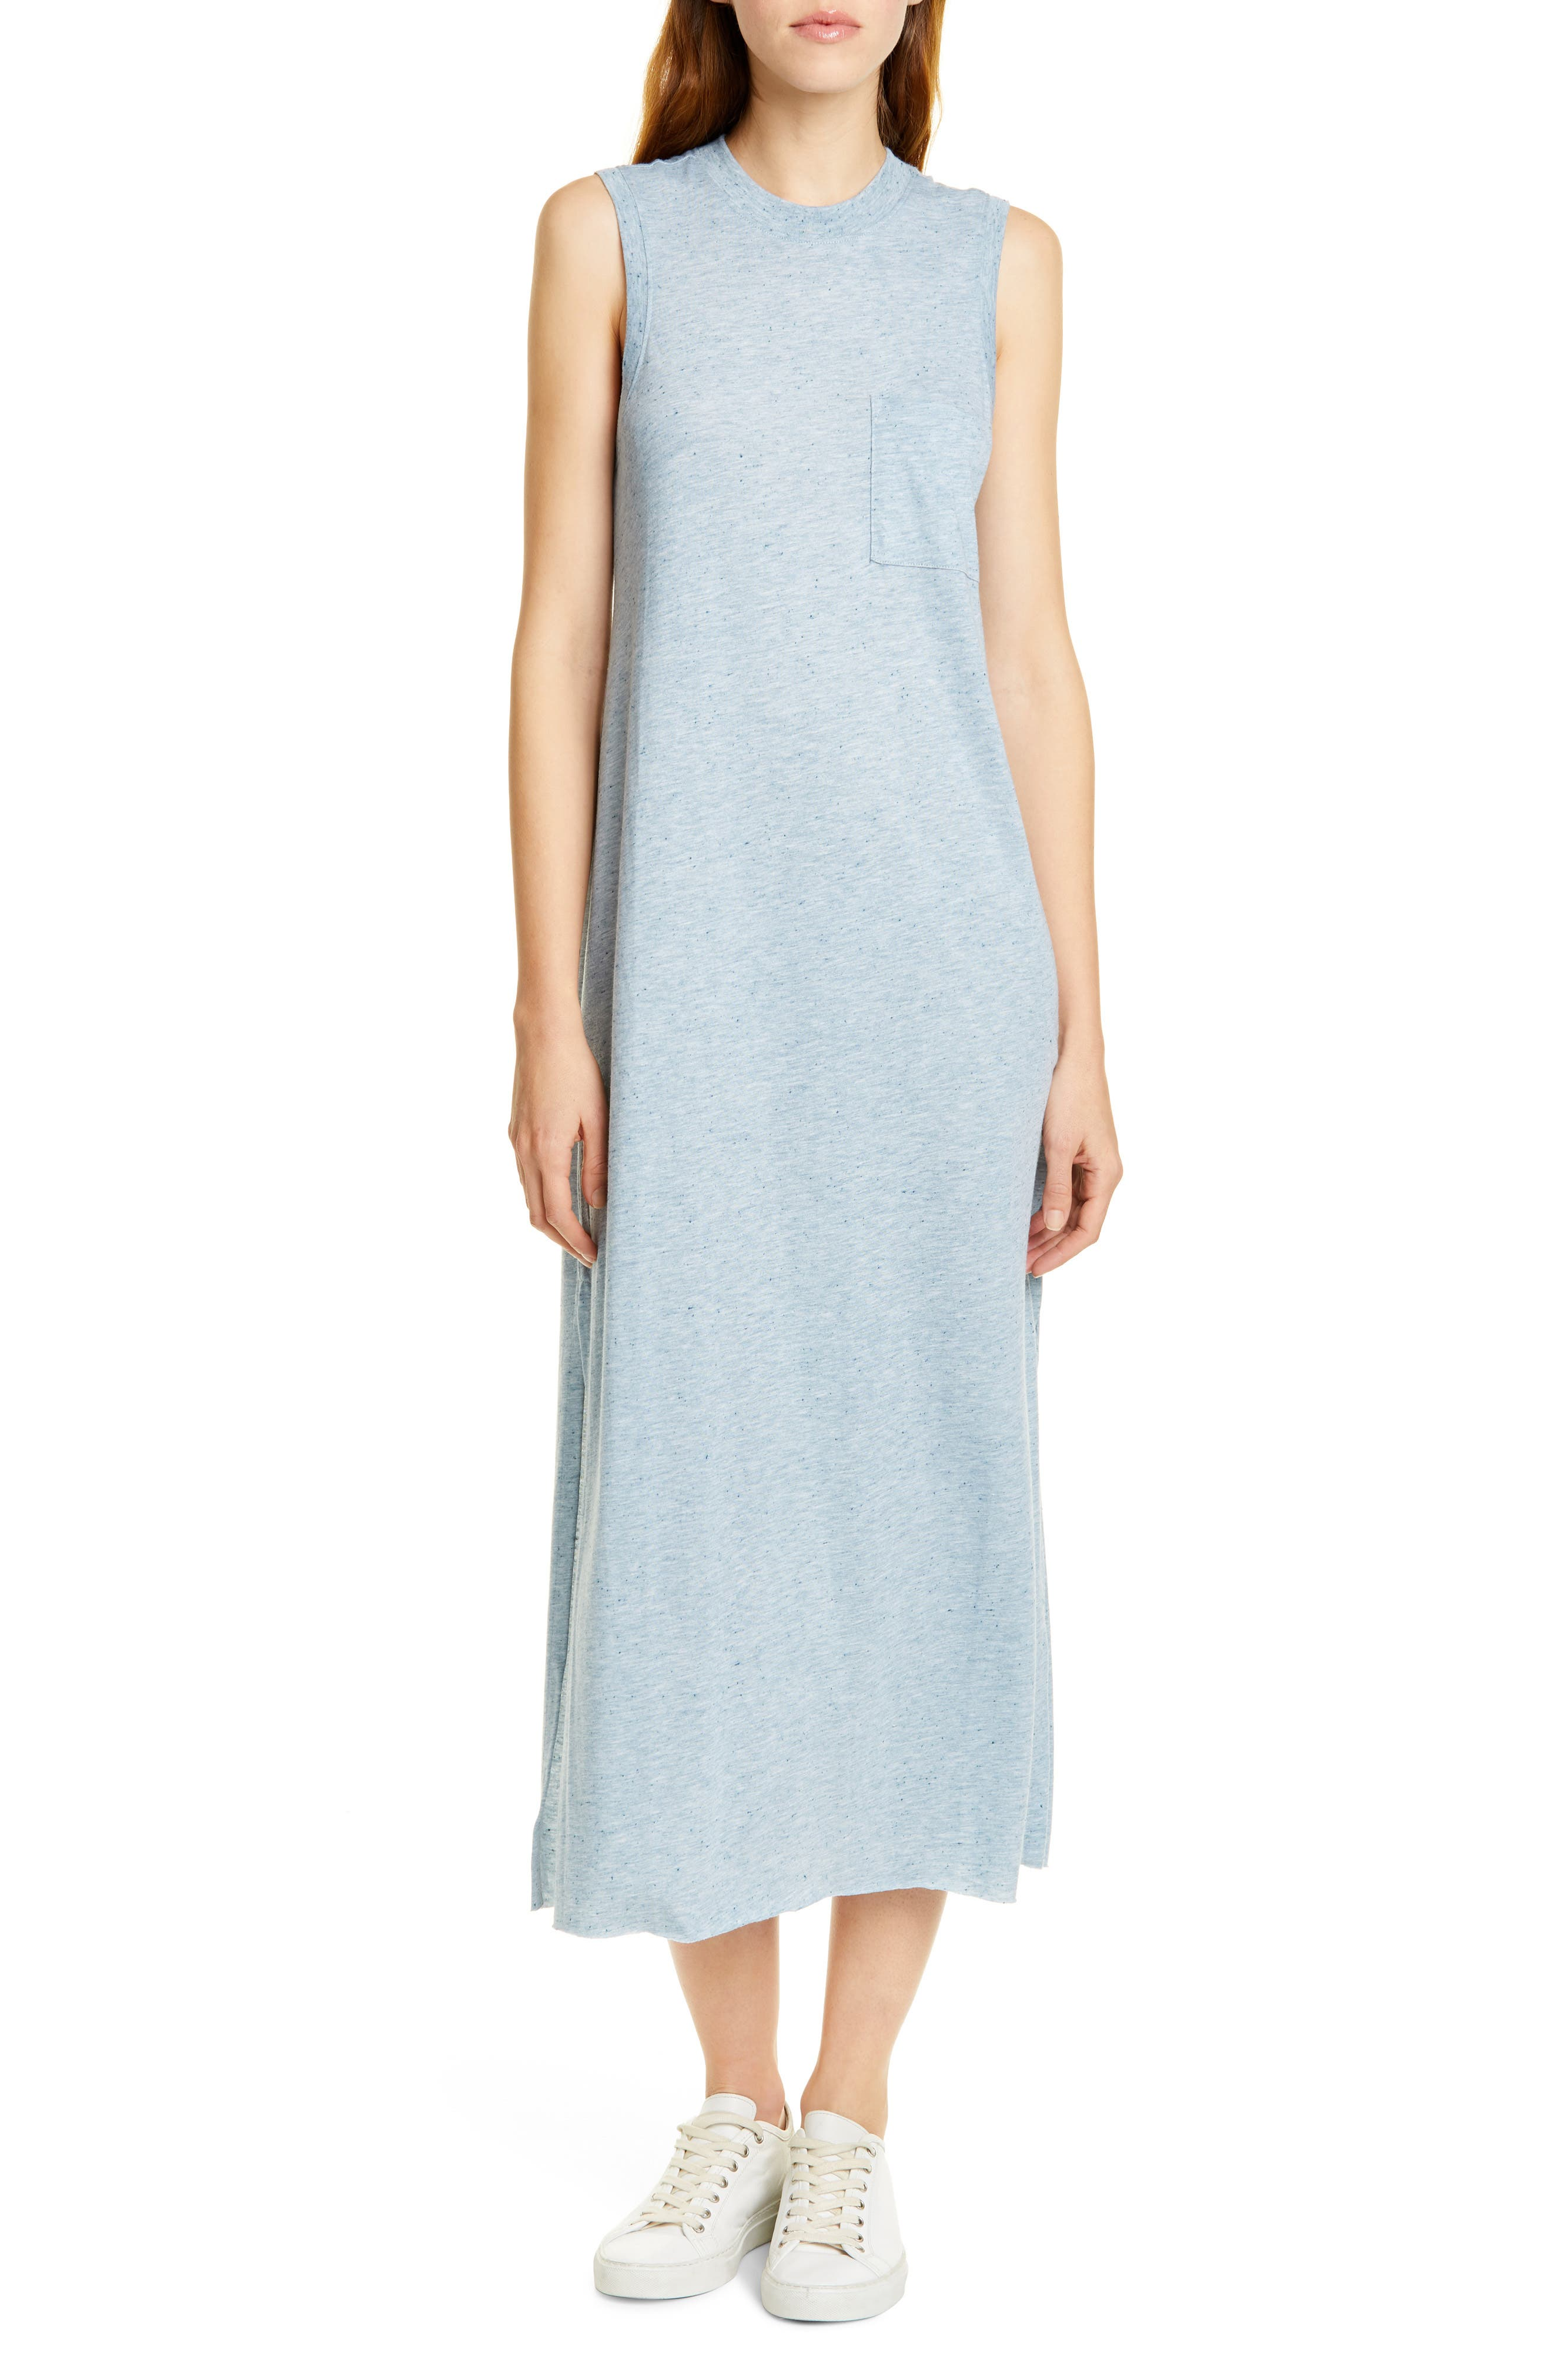 Atm Anthony Thomas Melillo Donegal Pocket Midi Dress, Blue